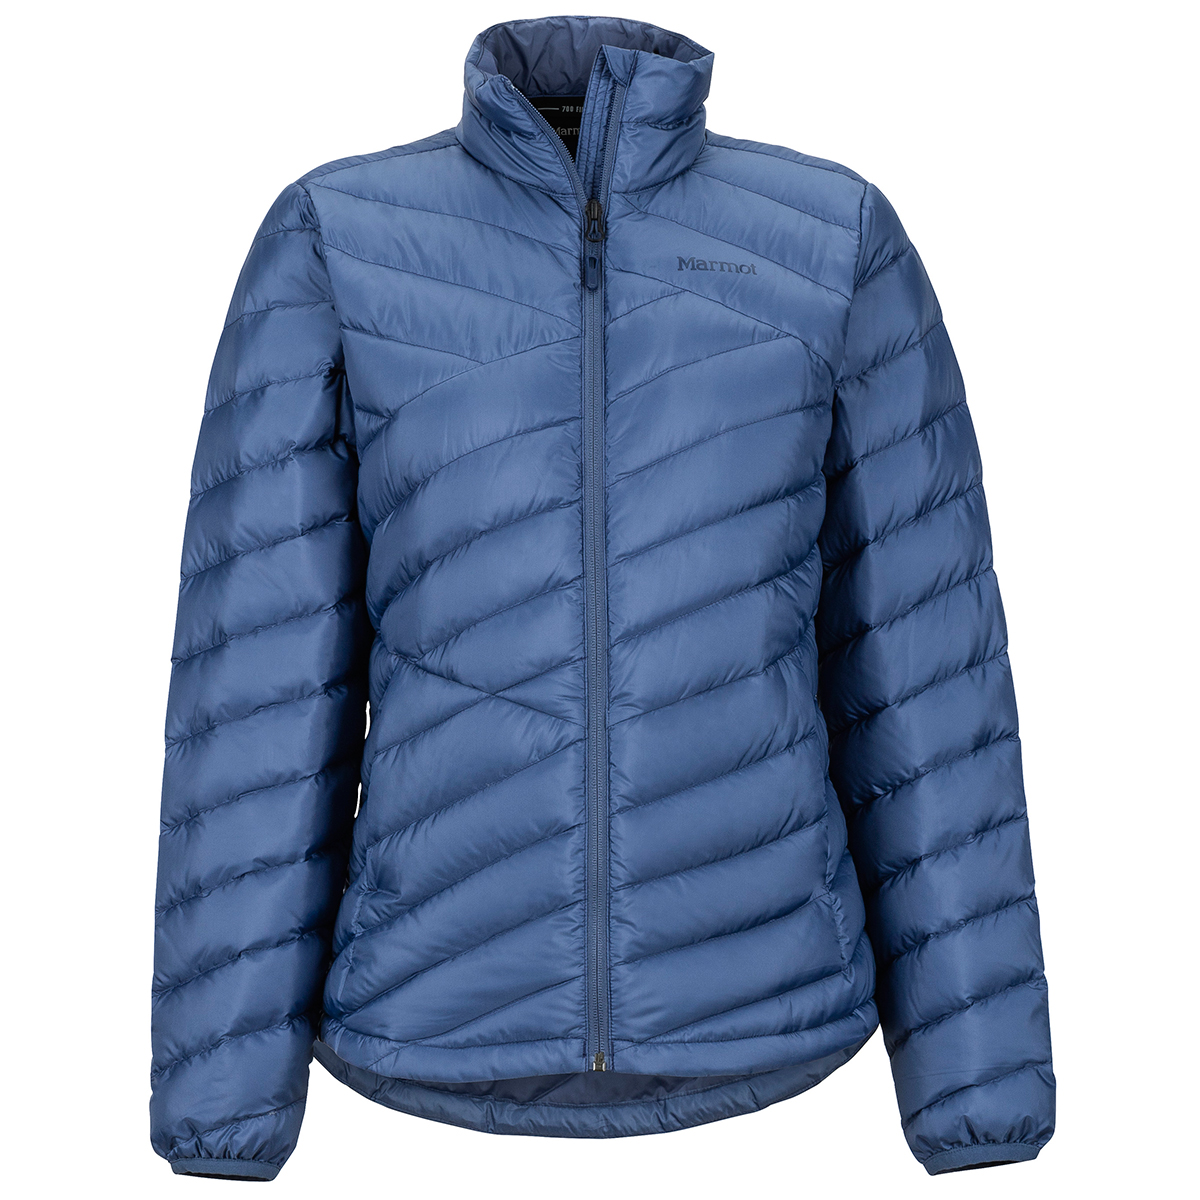 Marmot Women's Highlander Jacket - Blue, S